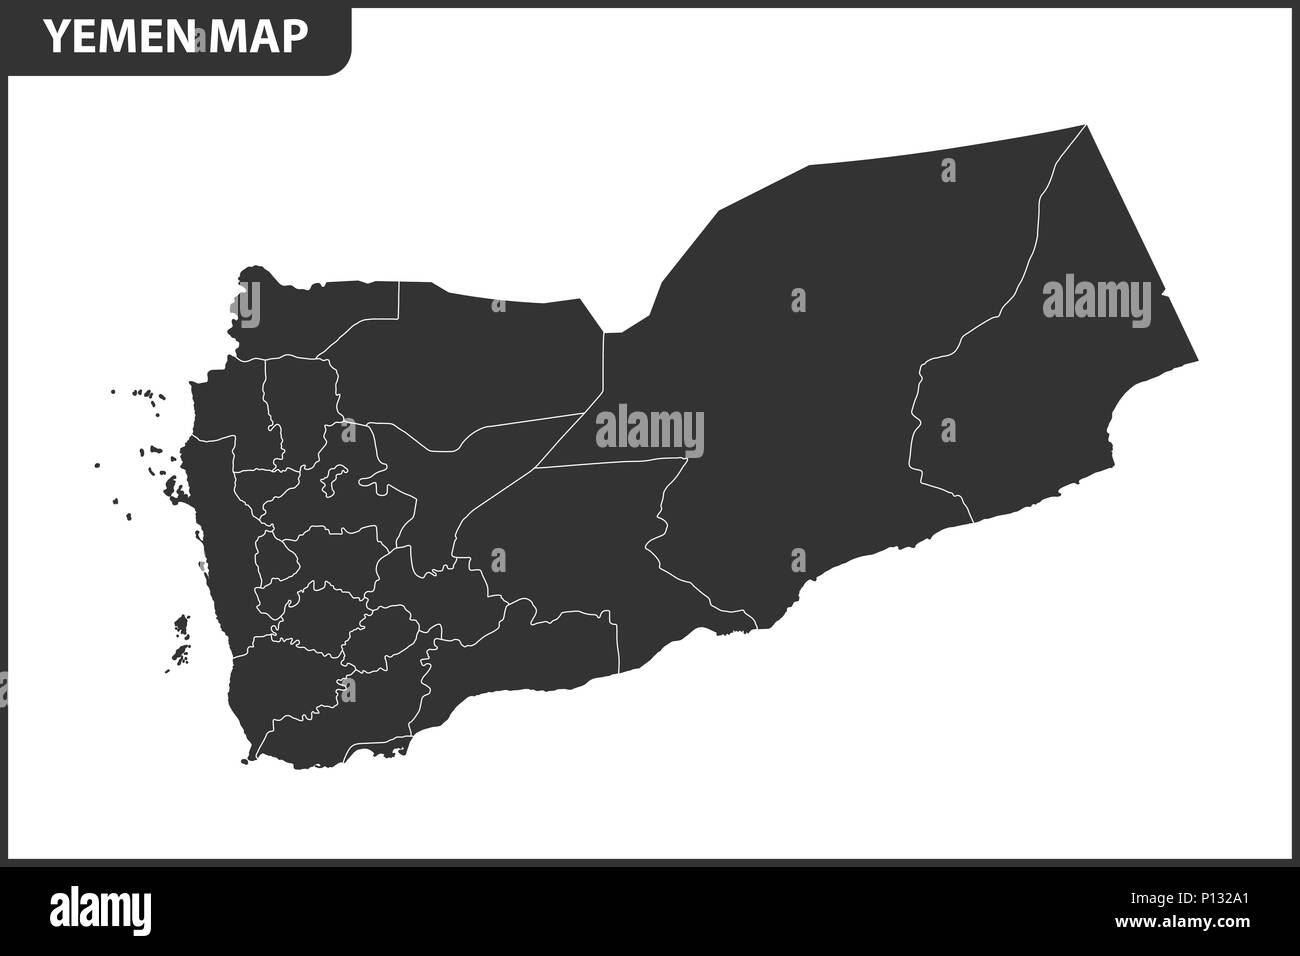 The detailed map of Yemen with regions or states. Administrative division. Stock Vector